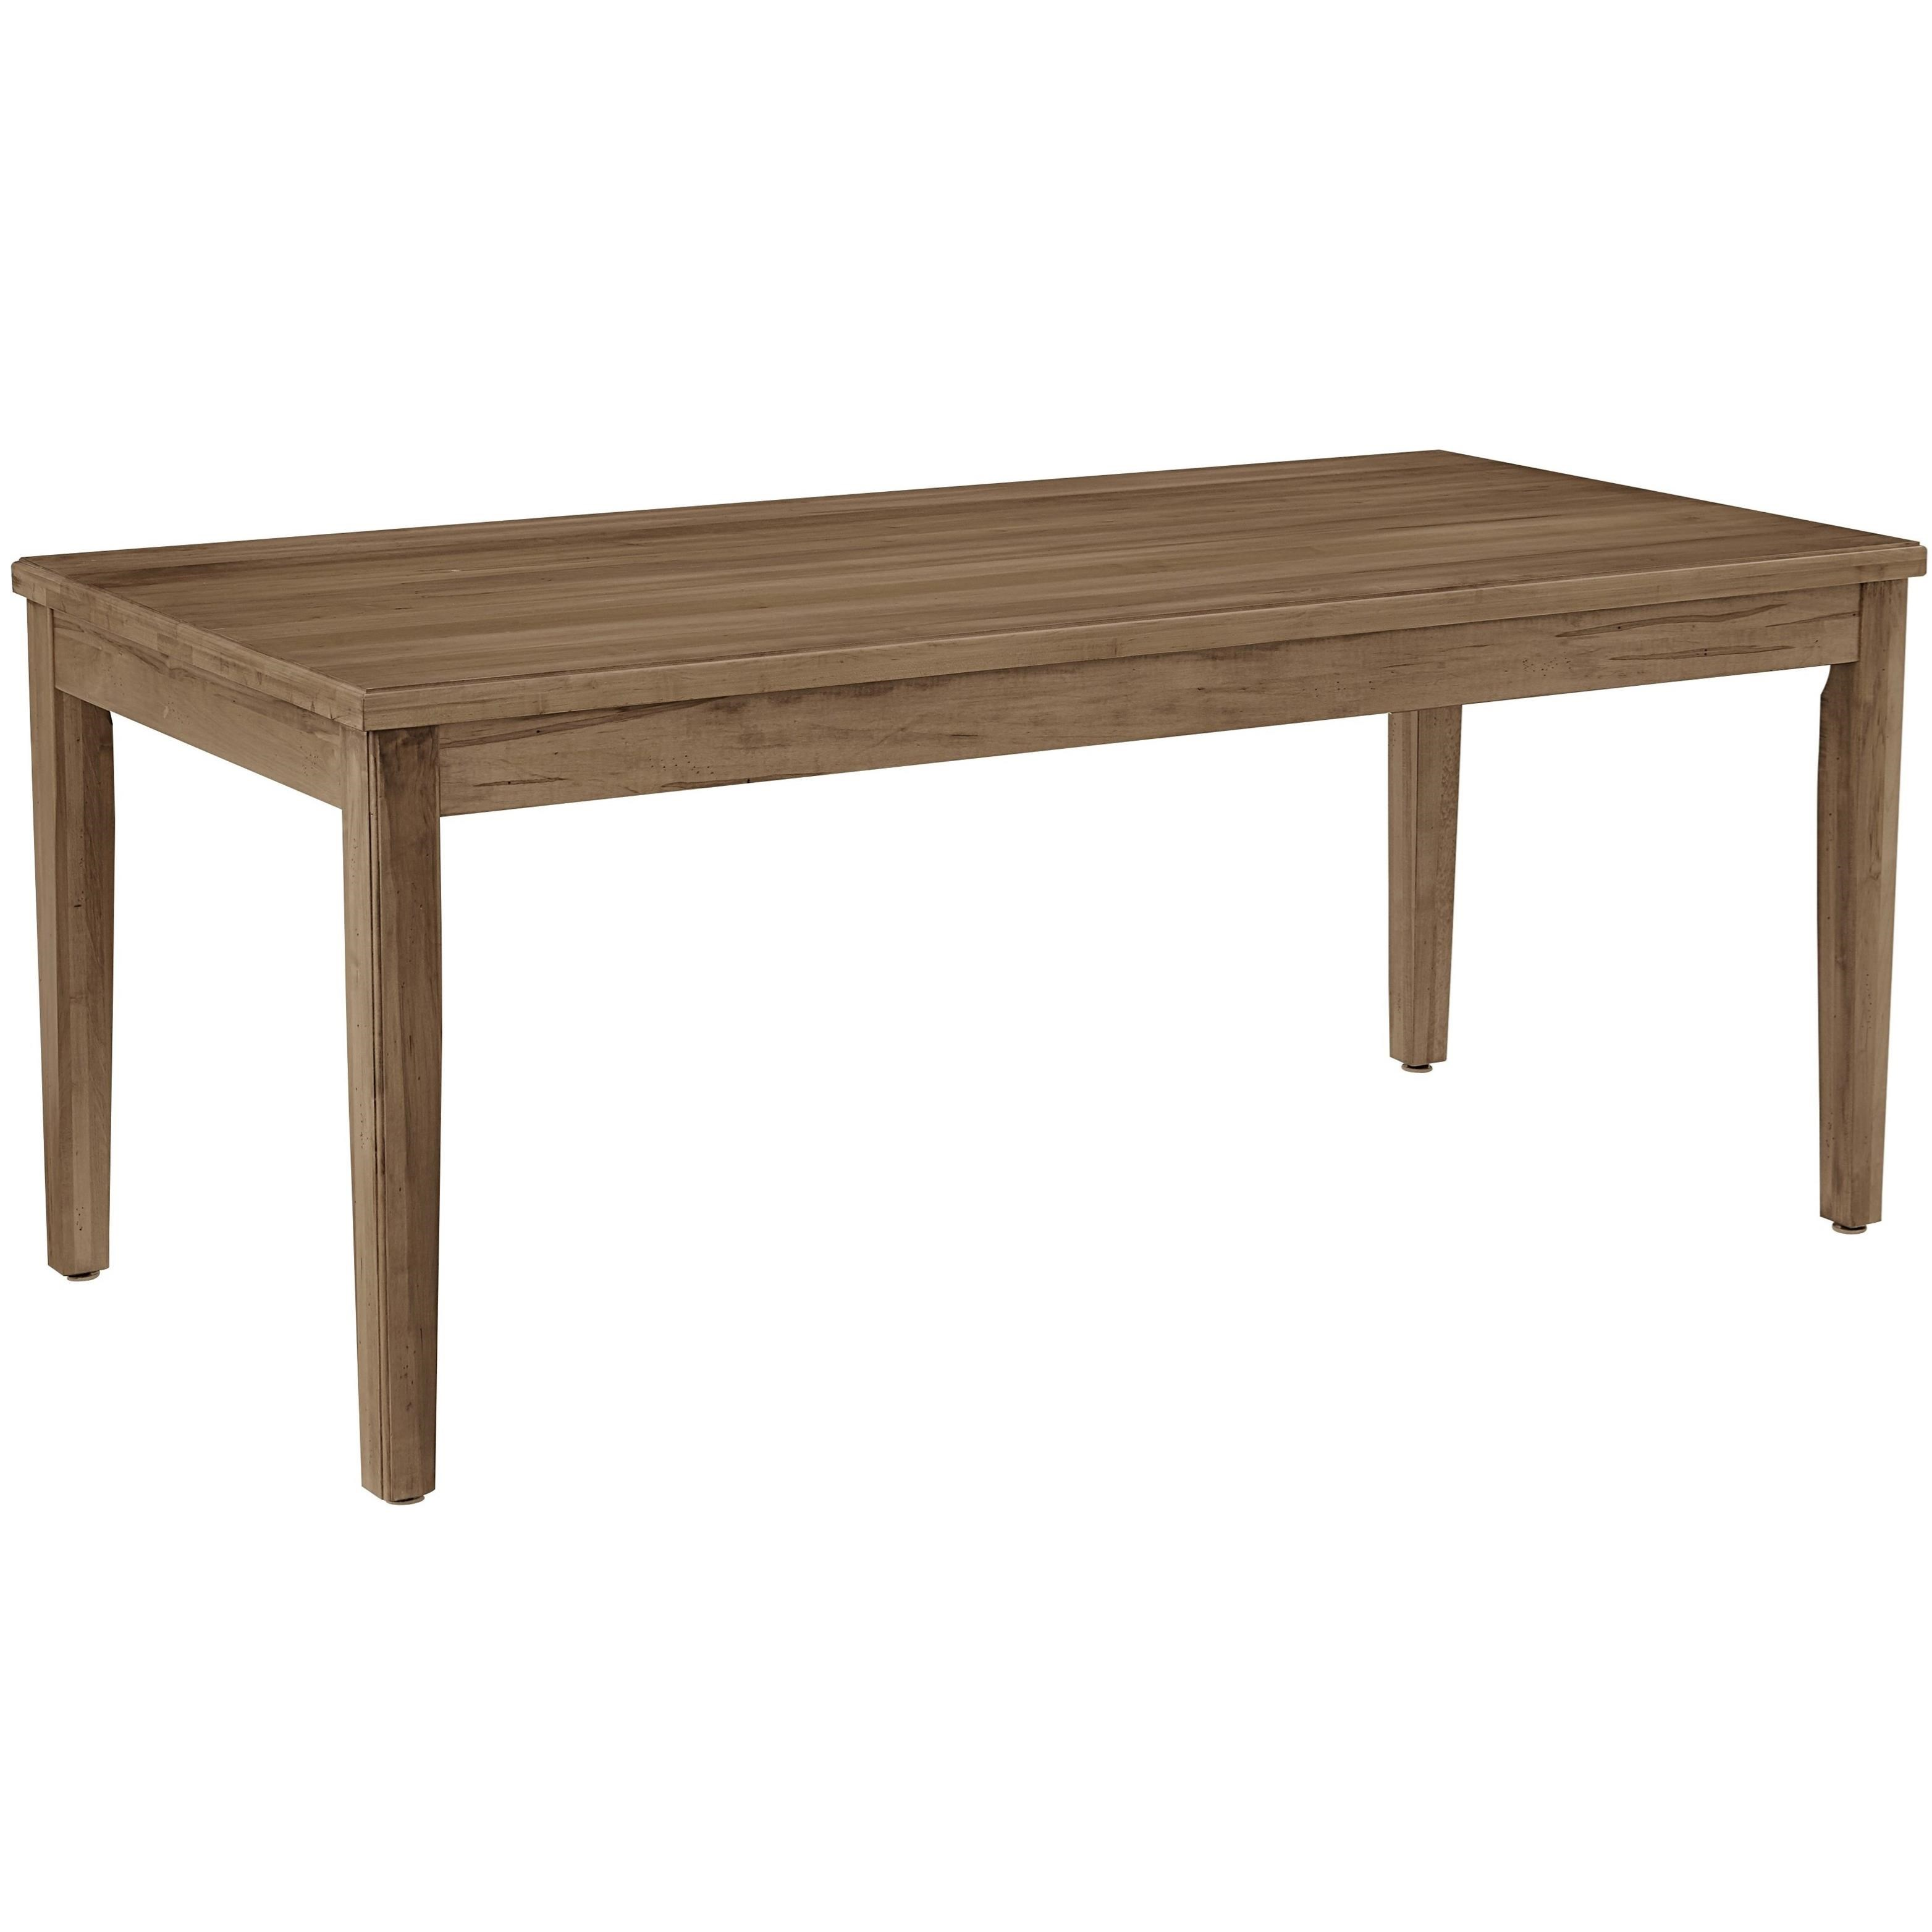 maple kitchen table island carts artisan post simply dining solid wood 72